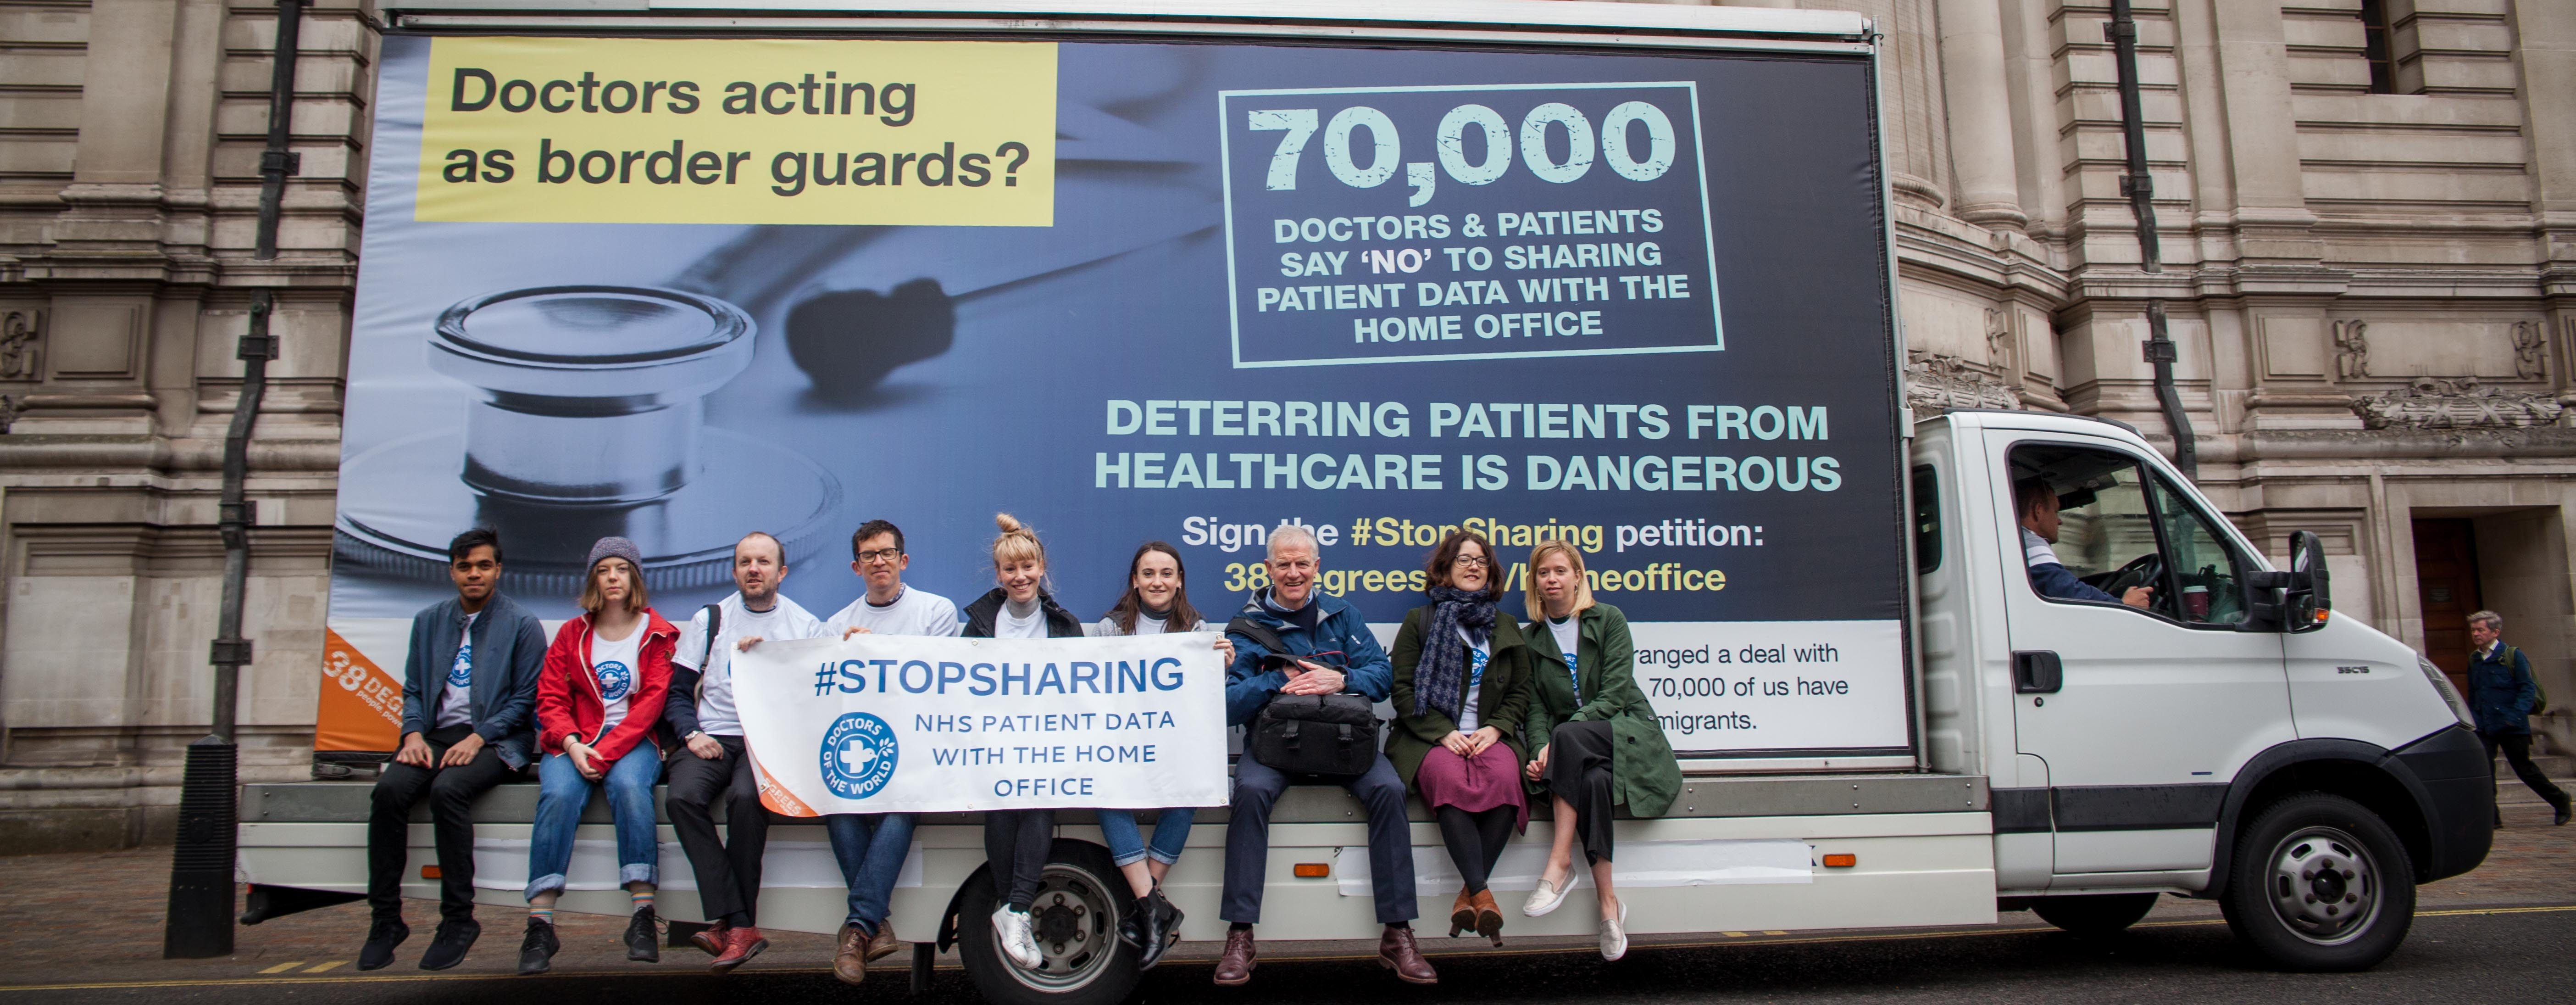 stop-sharing-campaign-truck